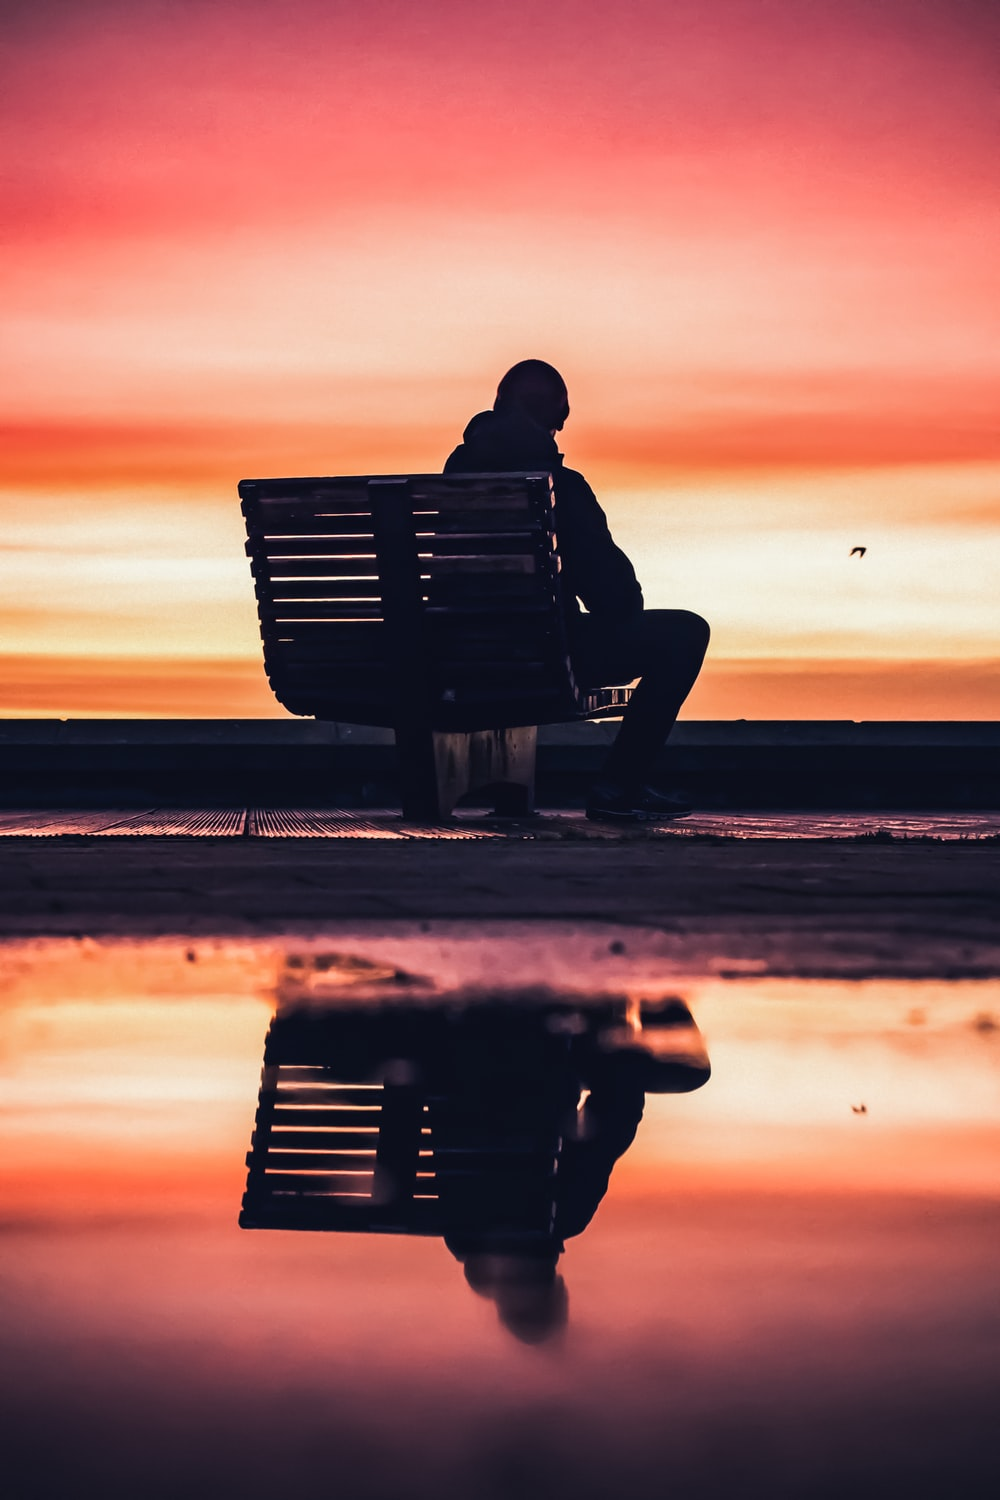 silhouette of man sitting on bench near beach during sunset